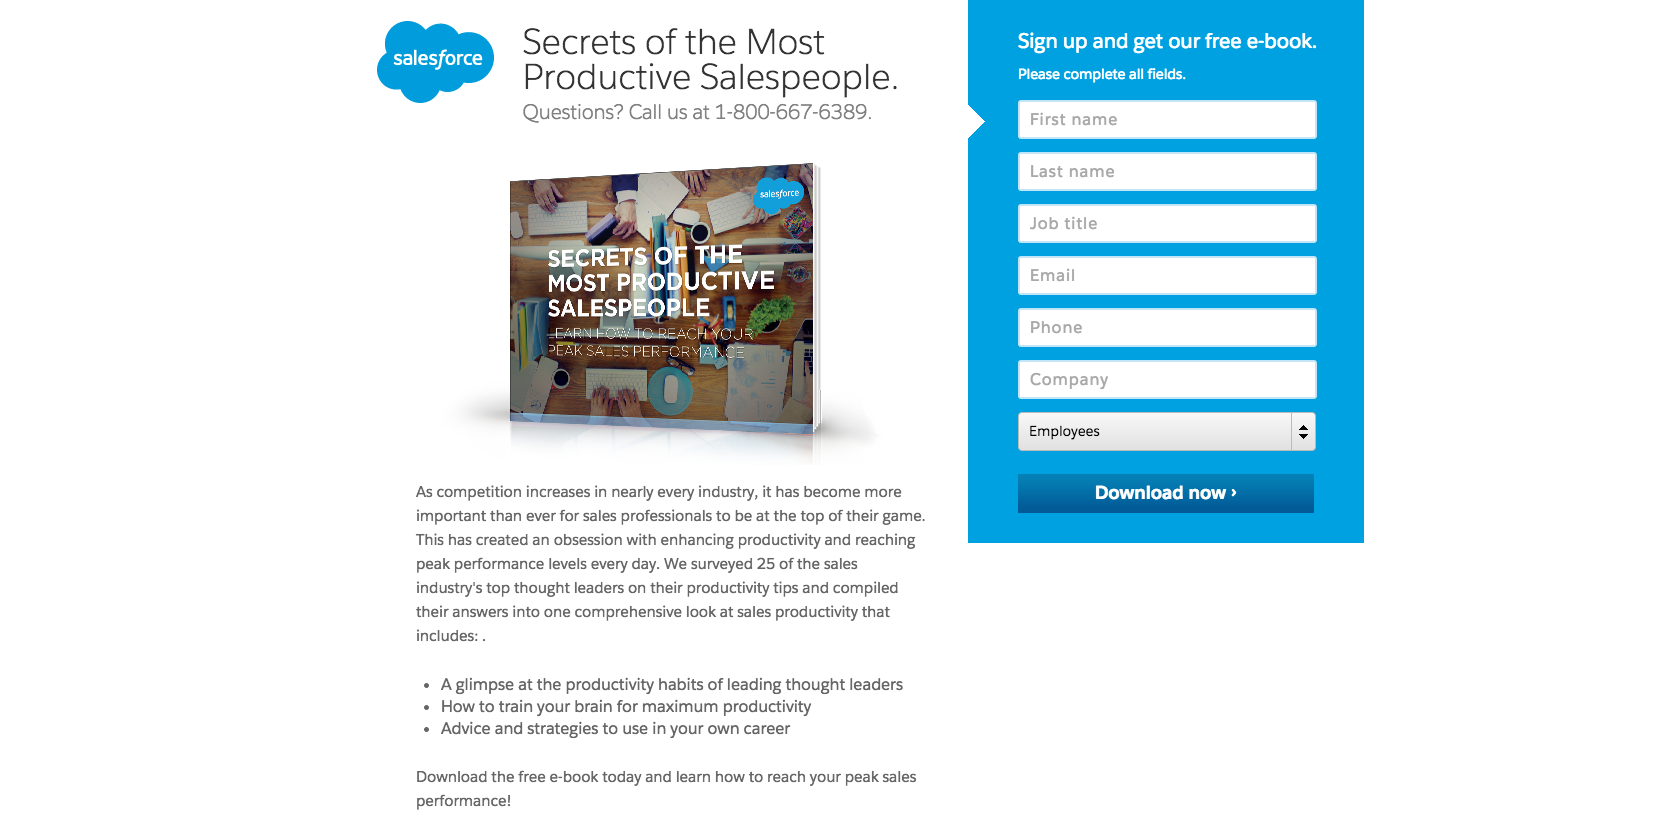 curiosity-gap-affects-conversion-rates-salesforce